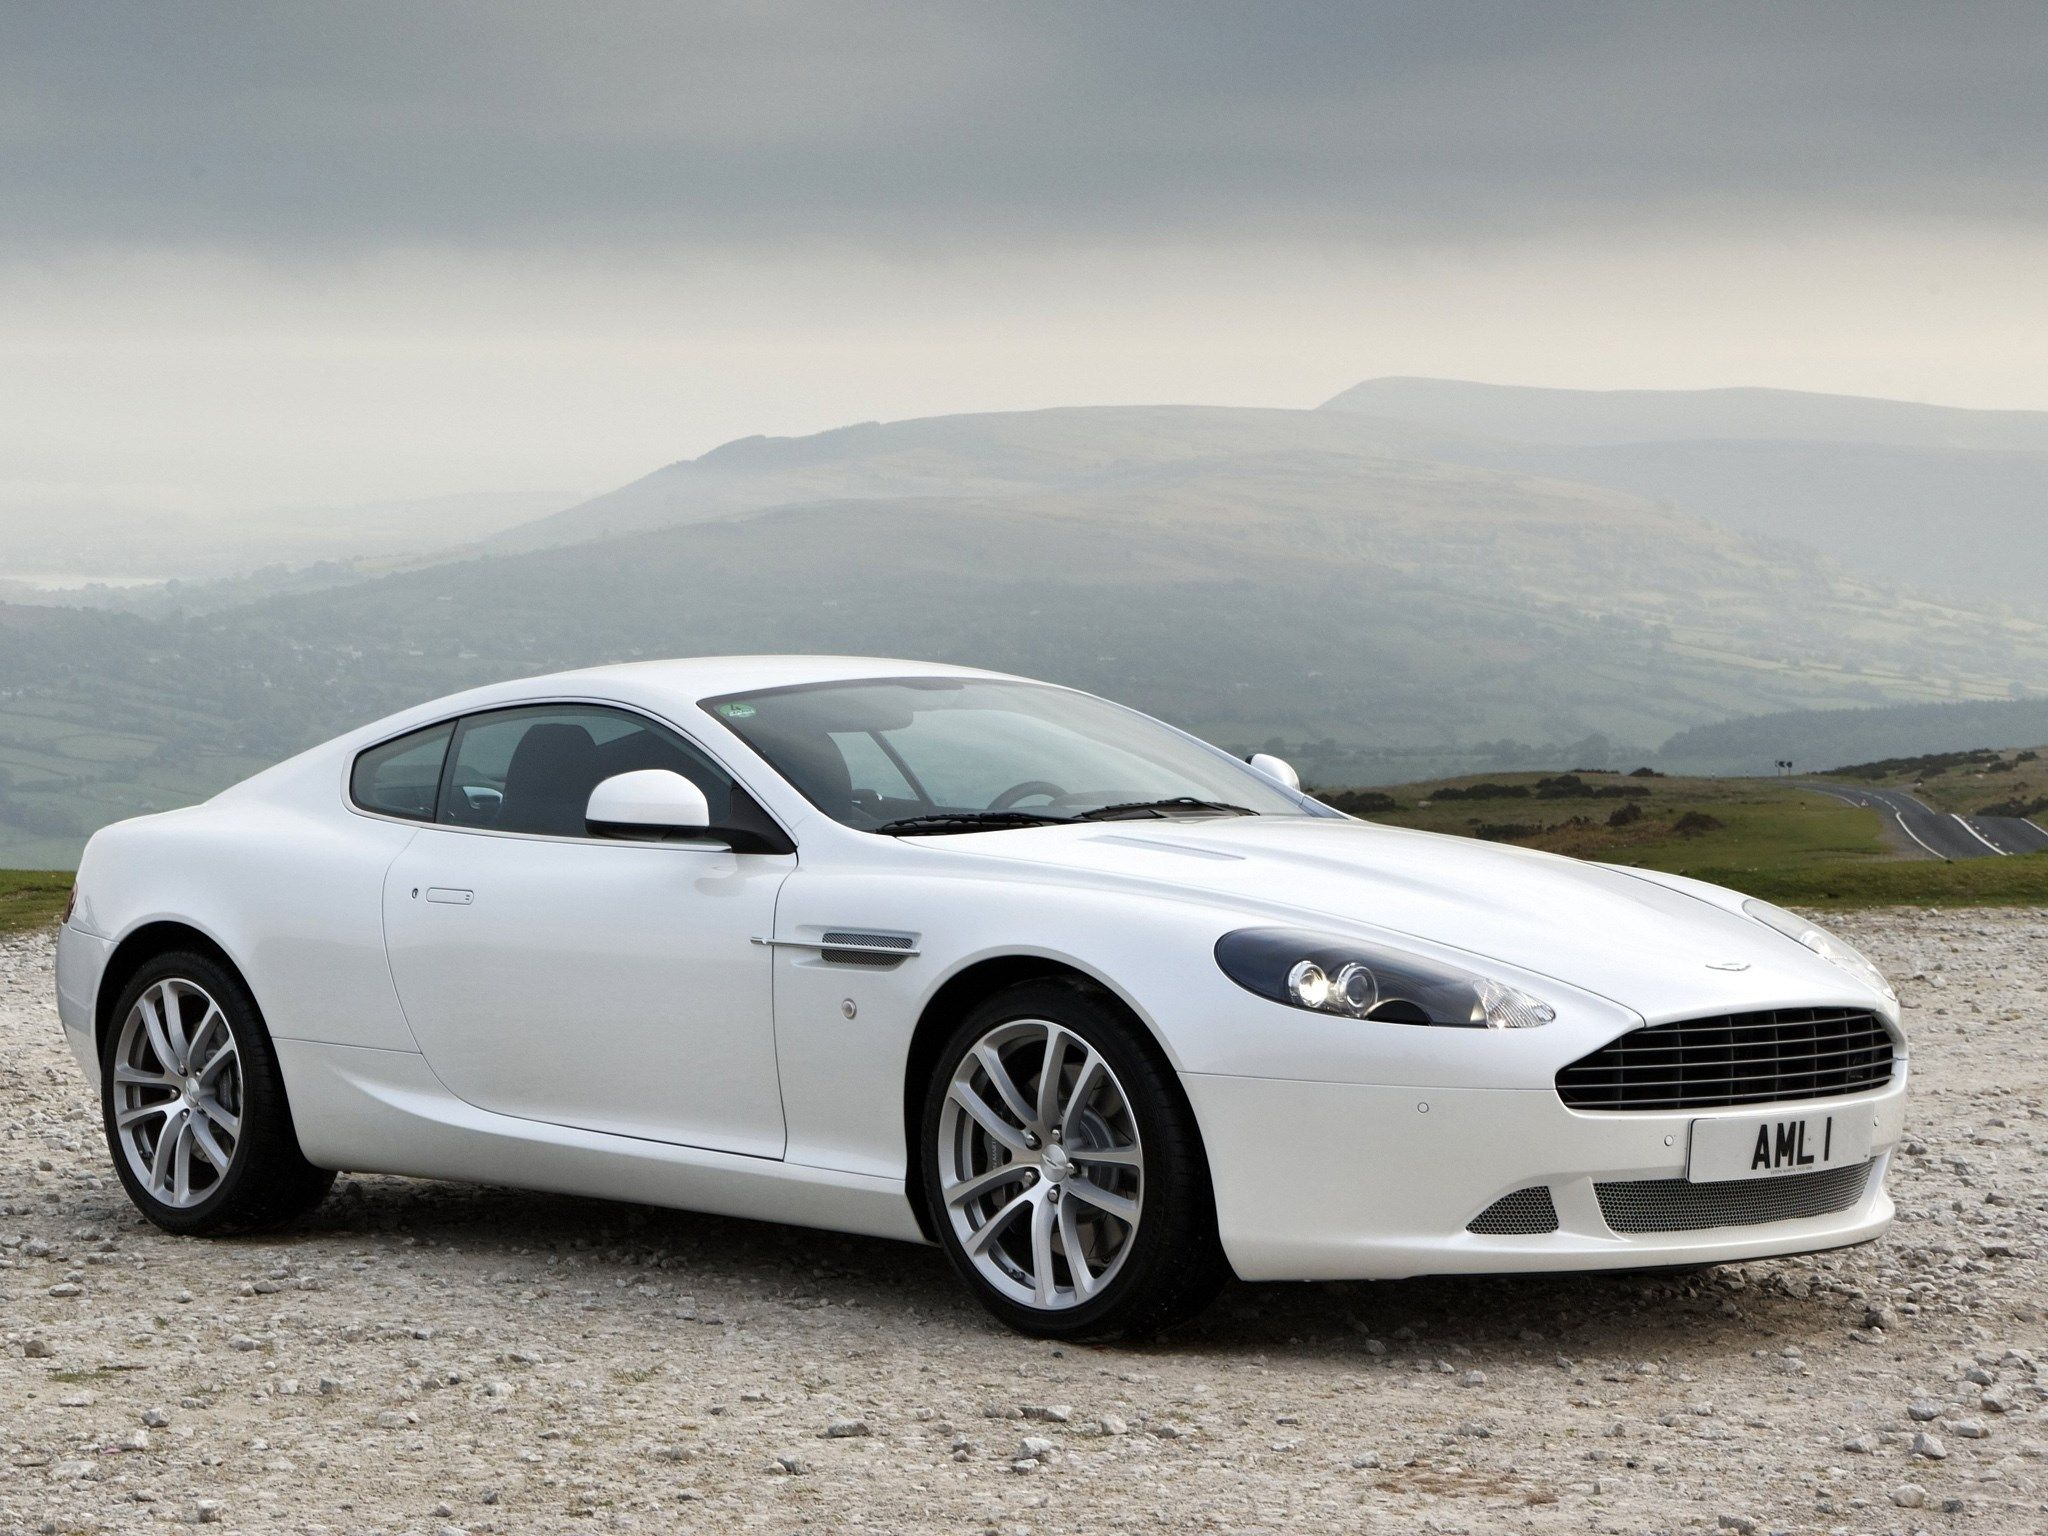 2048x1536 Px Aston Martin Db9 Wallpaper By Meadow Grant For